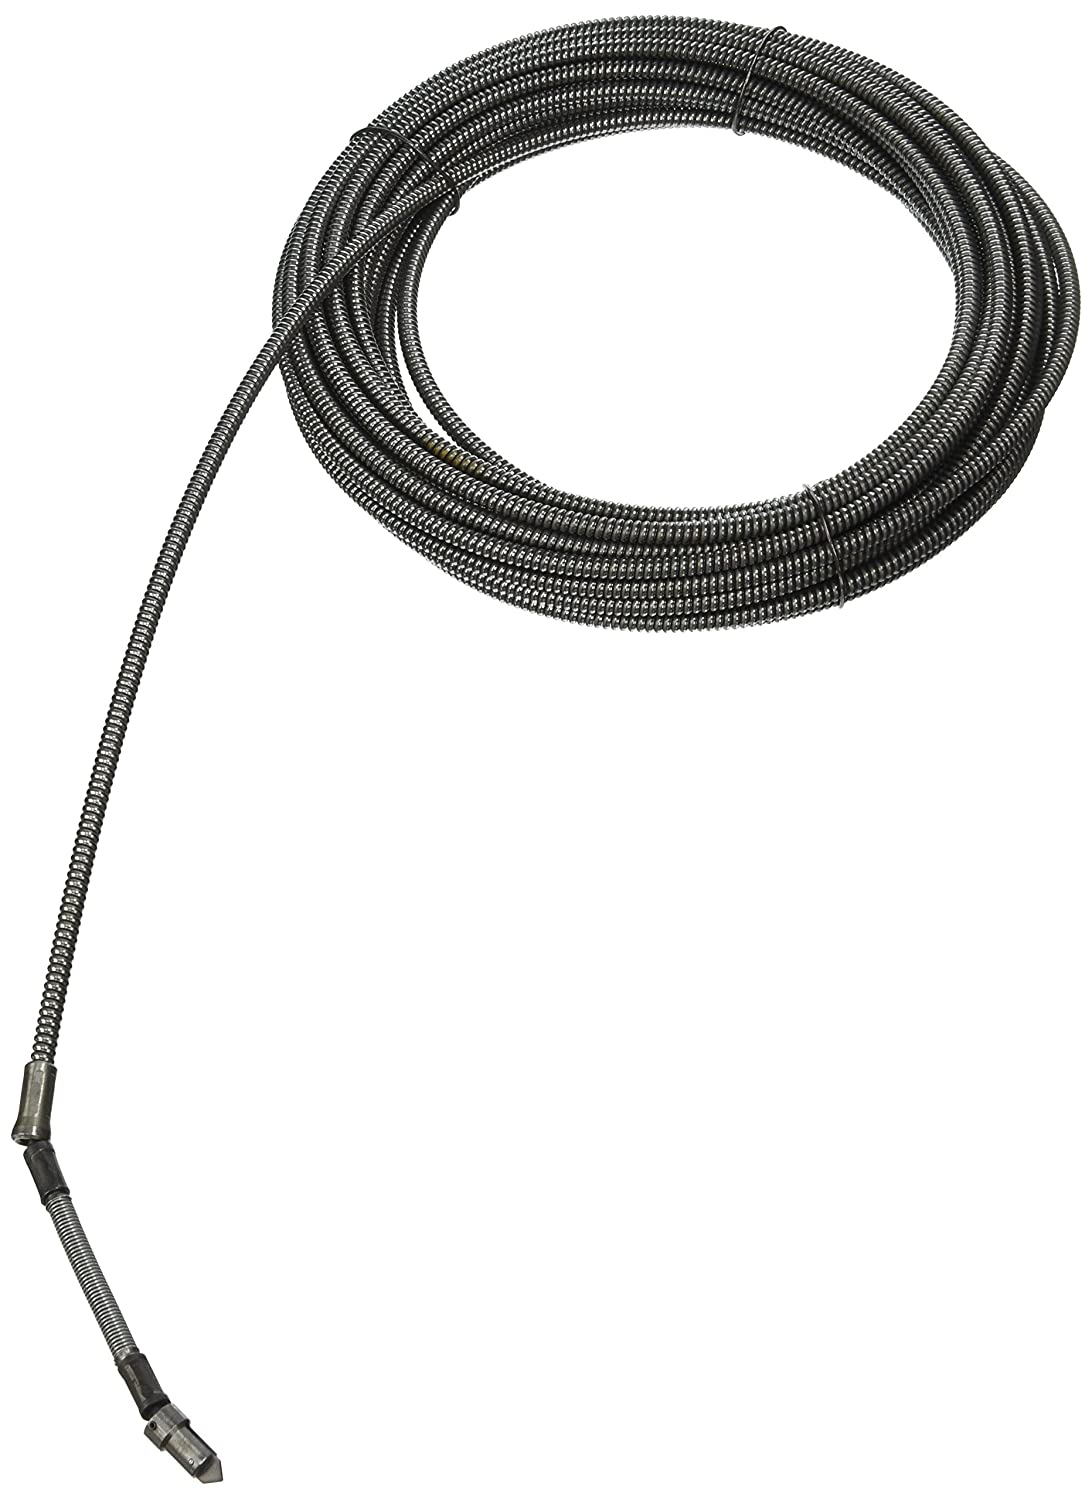 General Wire 50HE1-DDH Flexicore 1/4 x 50' Cable with Double Down Head